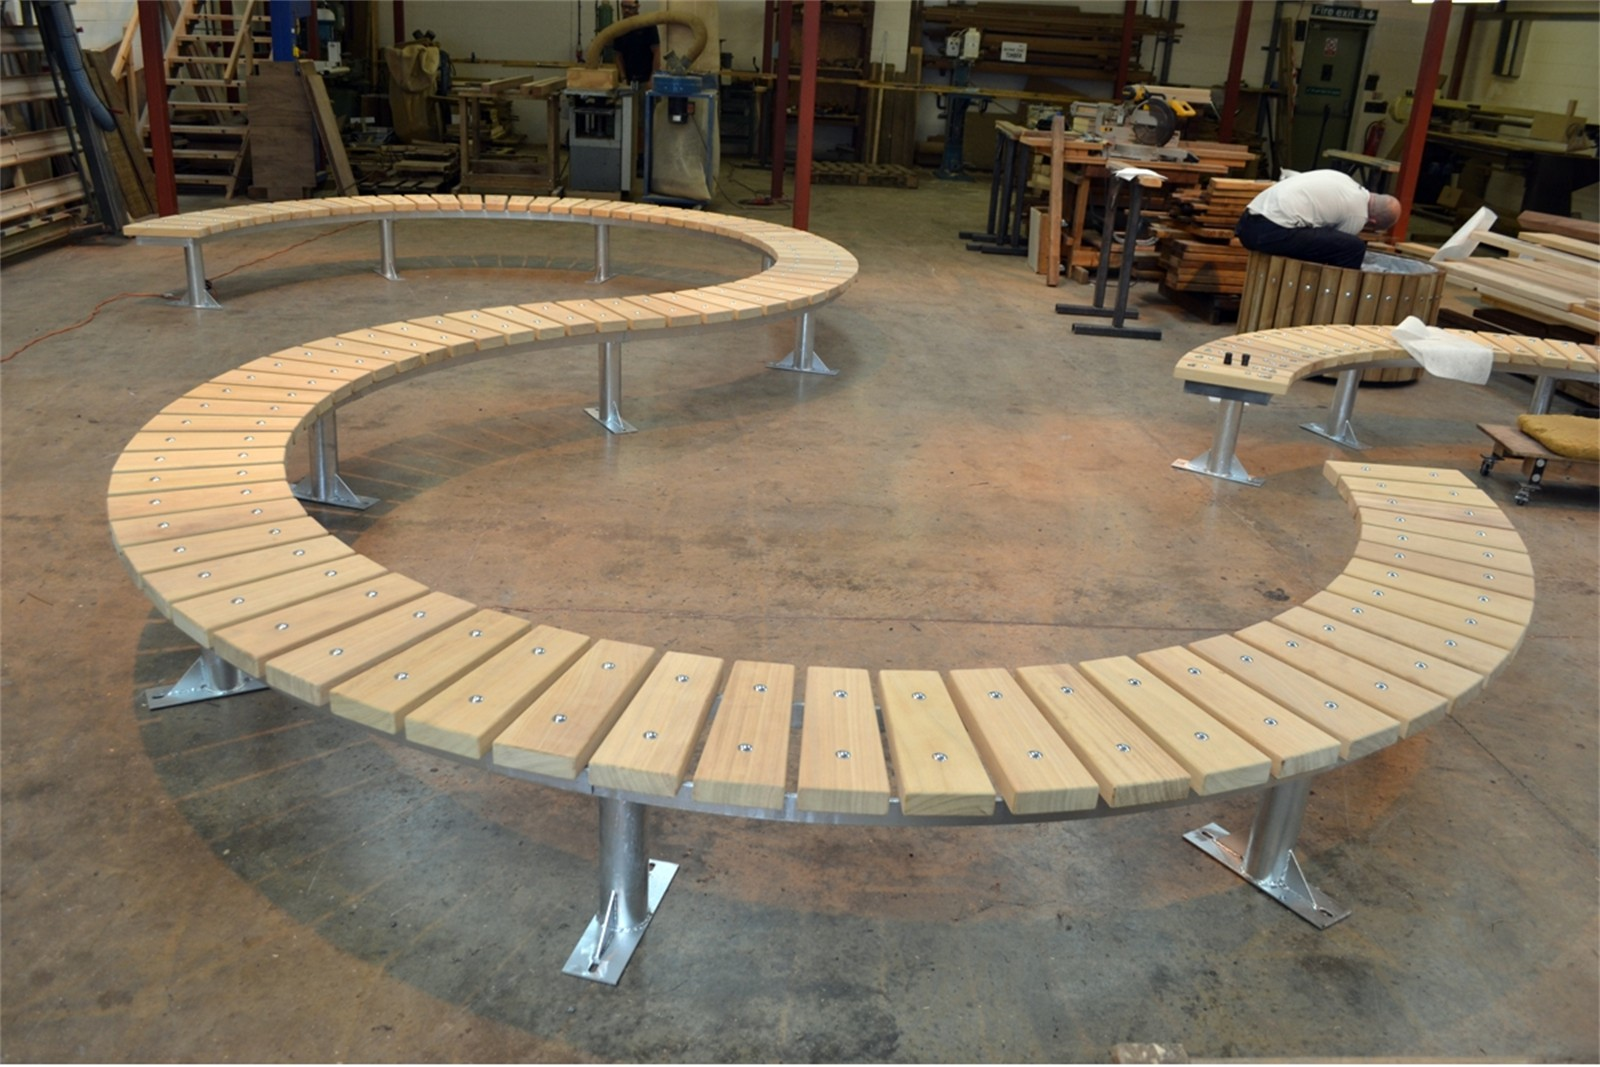 76ssp11 - Spalding long s-shaped bench in manufacture